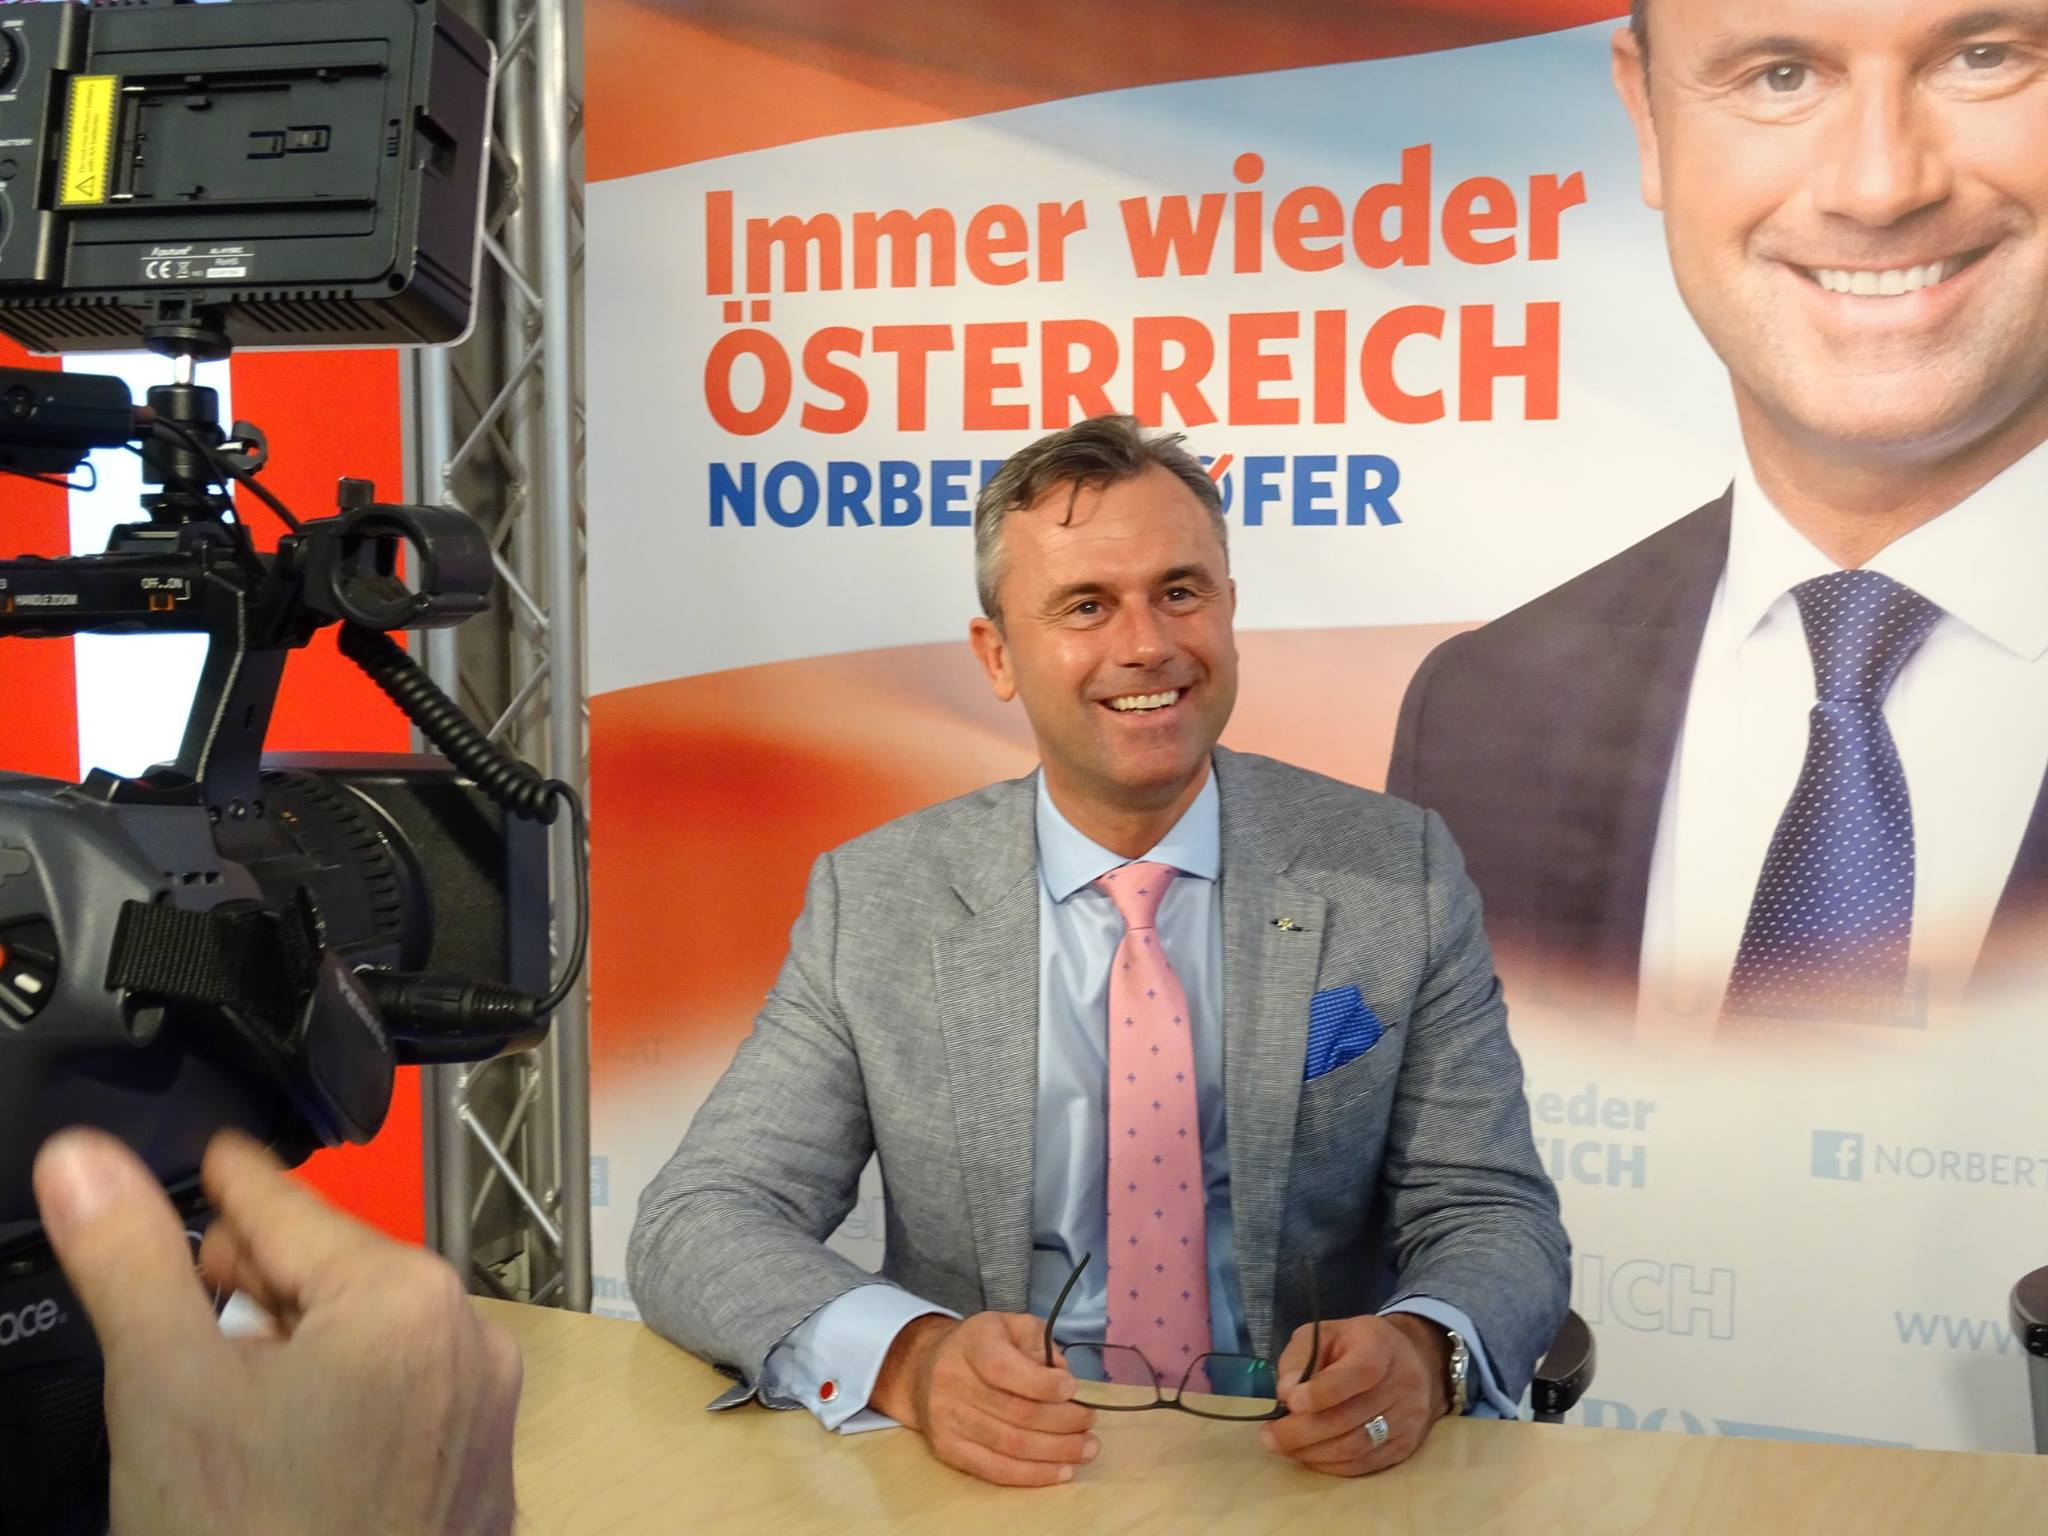 Far-right presidential candidate Norbert Hofer easily won the first round of Austria's presidential election. (Facebook)